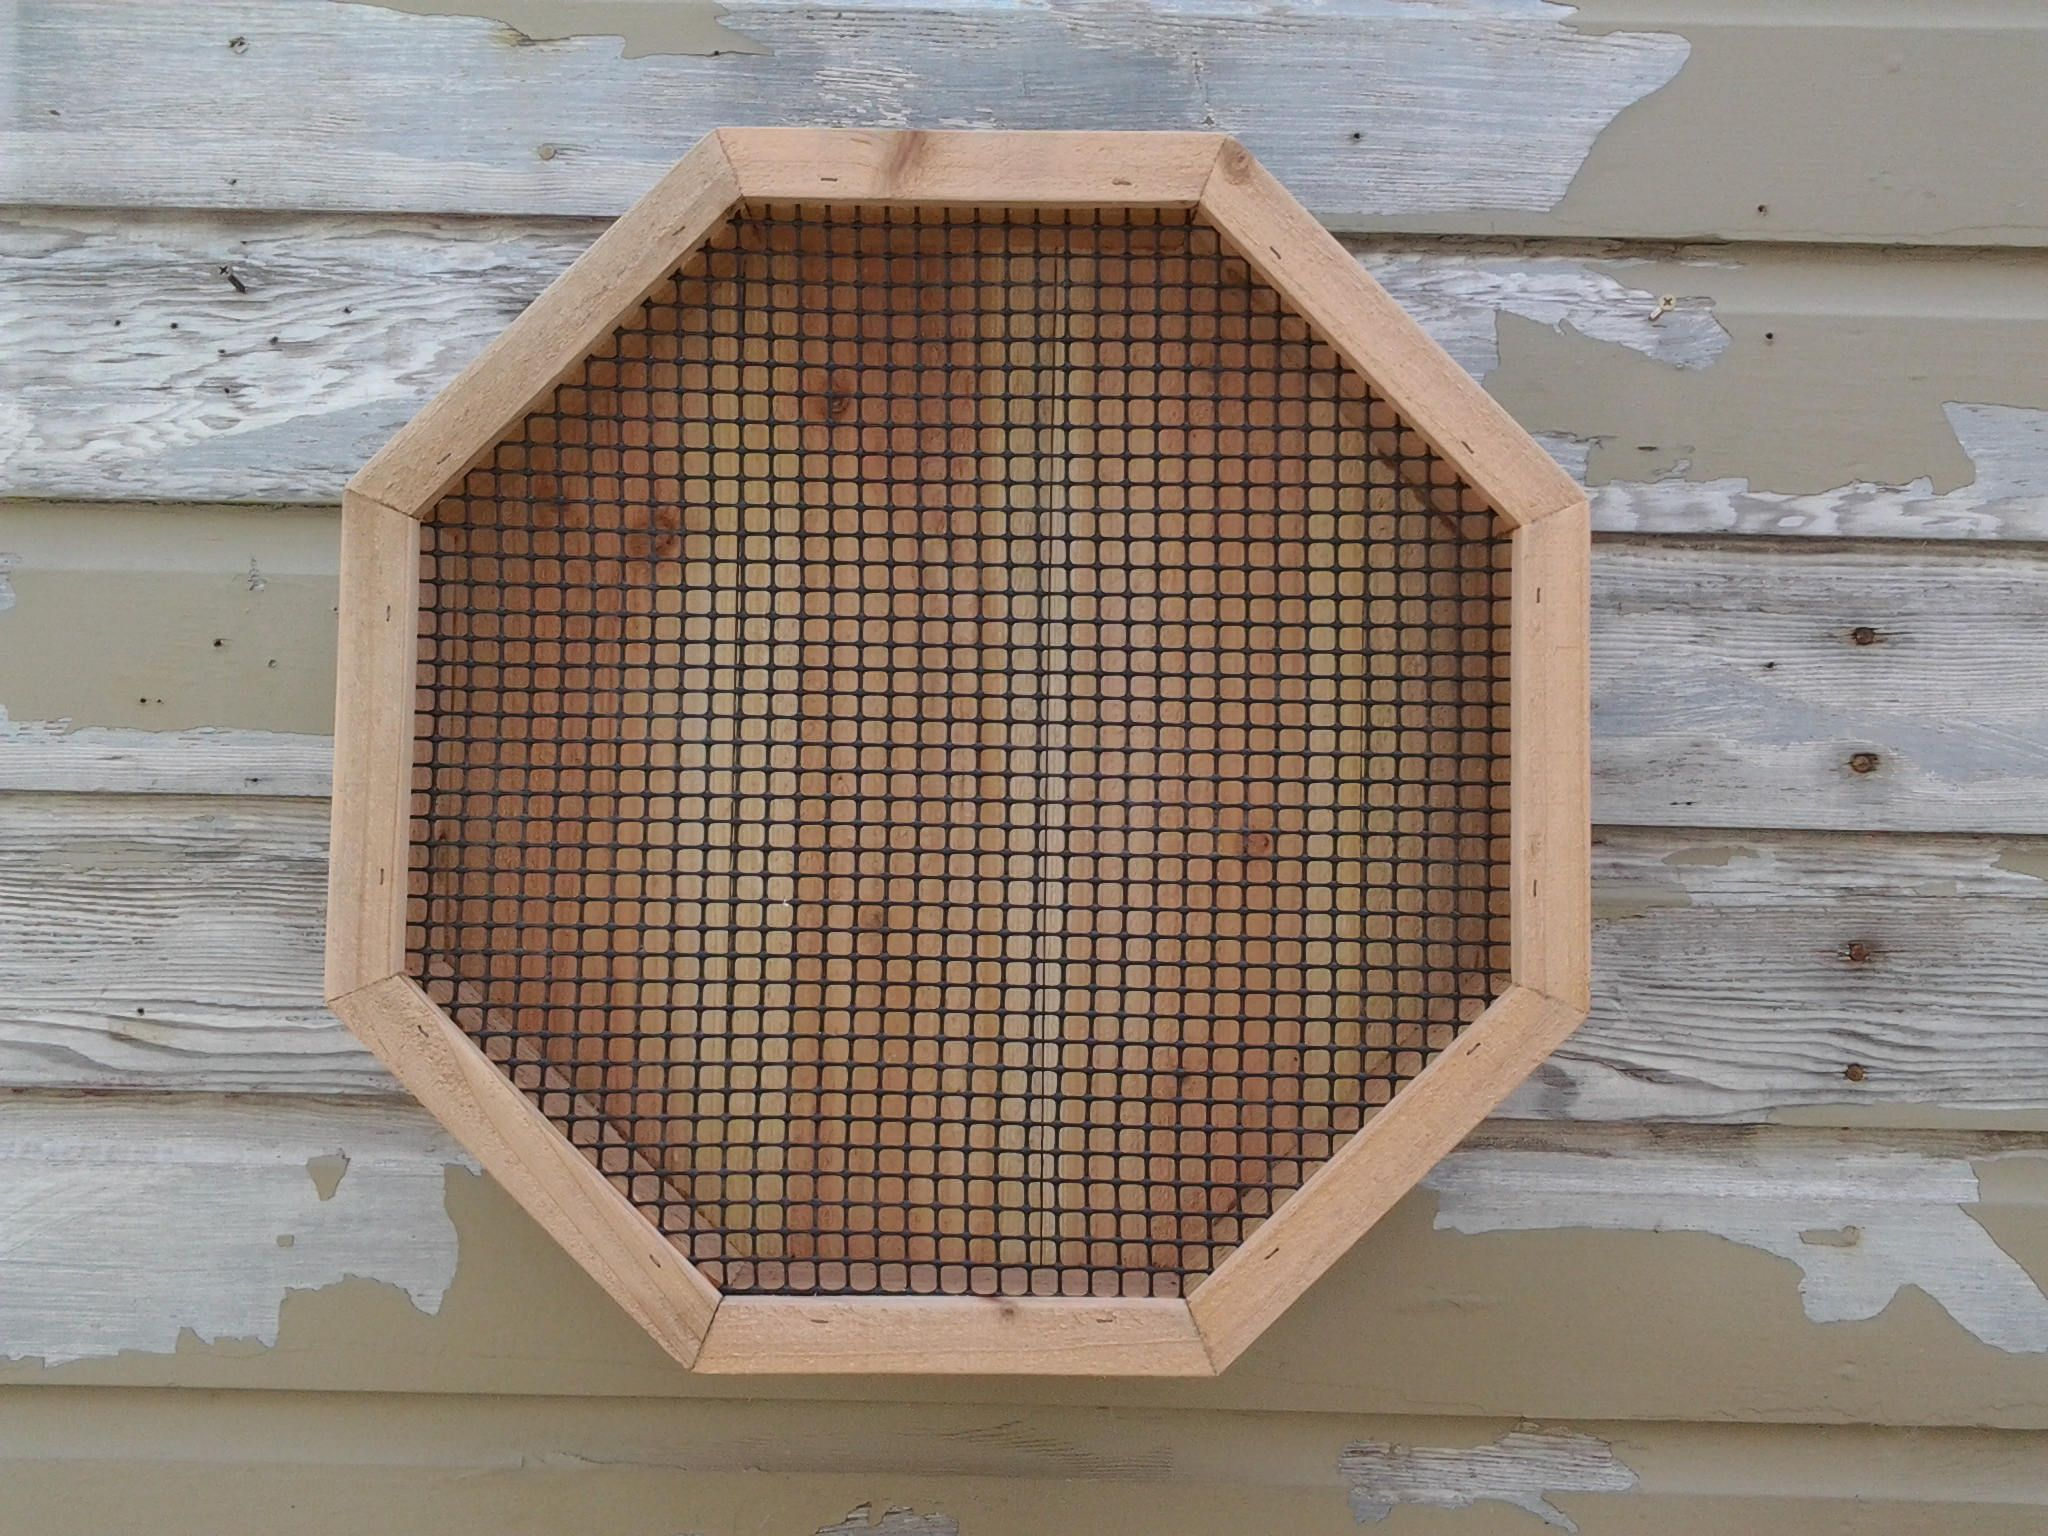 "Sale 75.00 -  19"" X 19"" Handcrafted Rustic Cedar Octagon Shaped Vertical Succulent Garden Wall Planter Box. by BigfootWoodCrafts on Etsy"